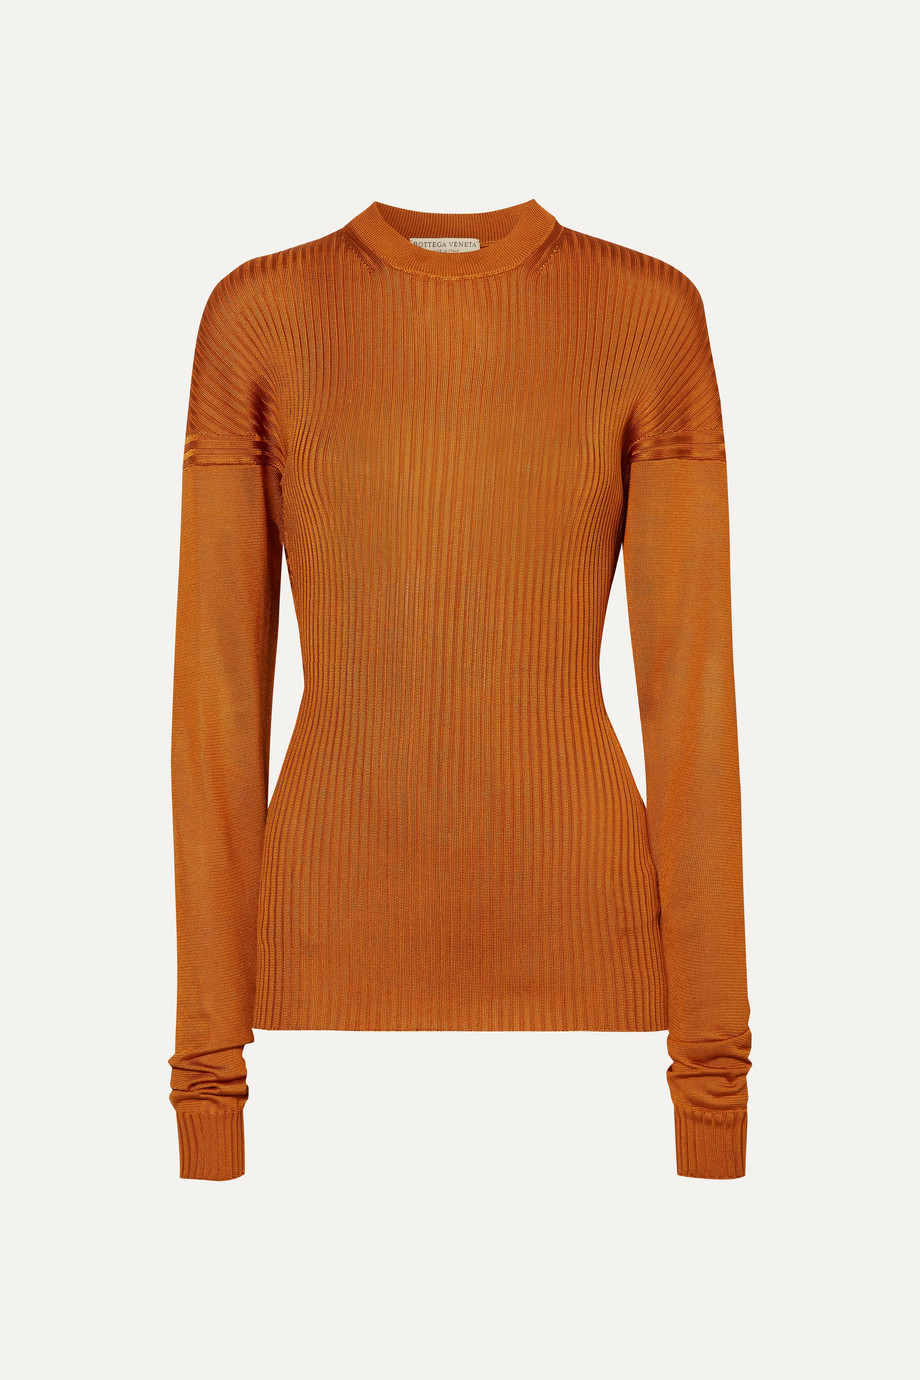 Paneld Ribbed Silk Sweater by Bottega Veneta, available on net-a-porter.com for $1650 Kylie Jenner Top Exact Product